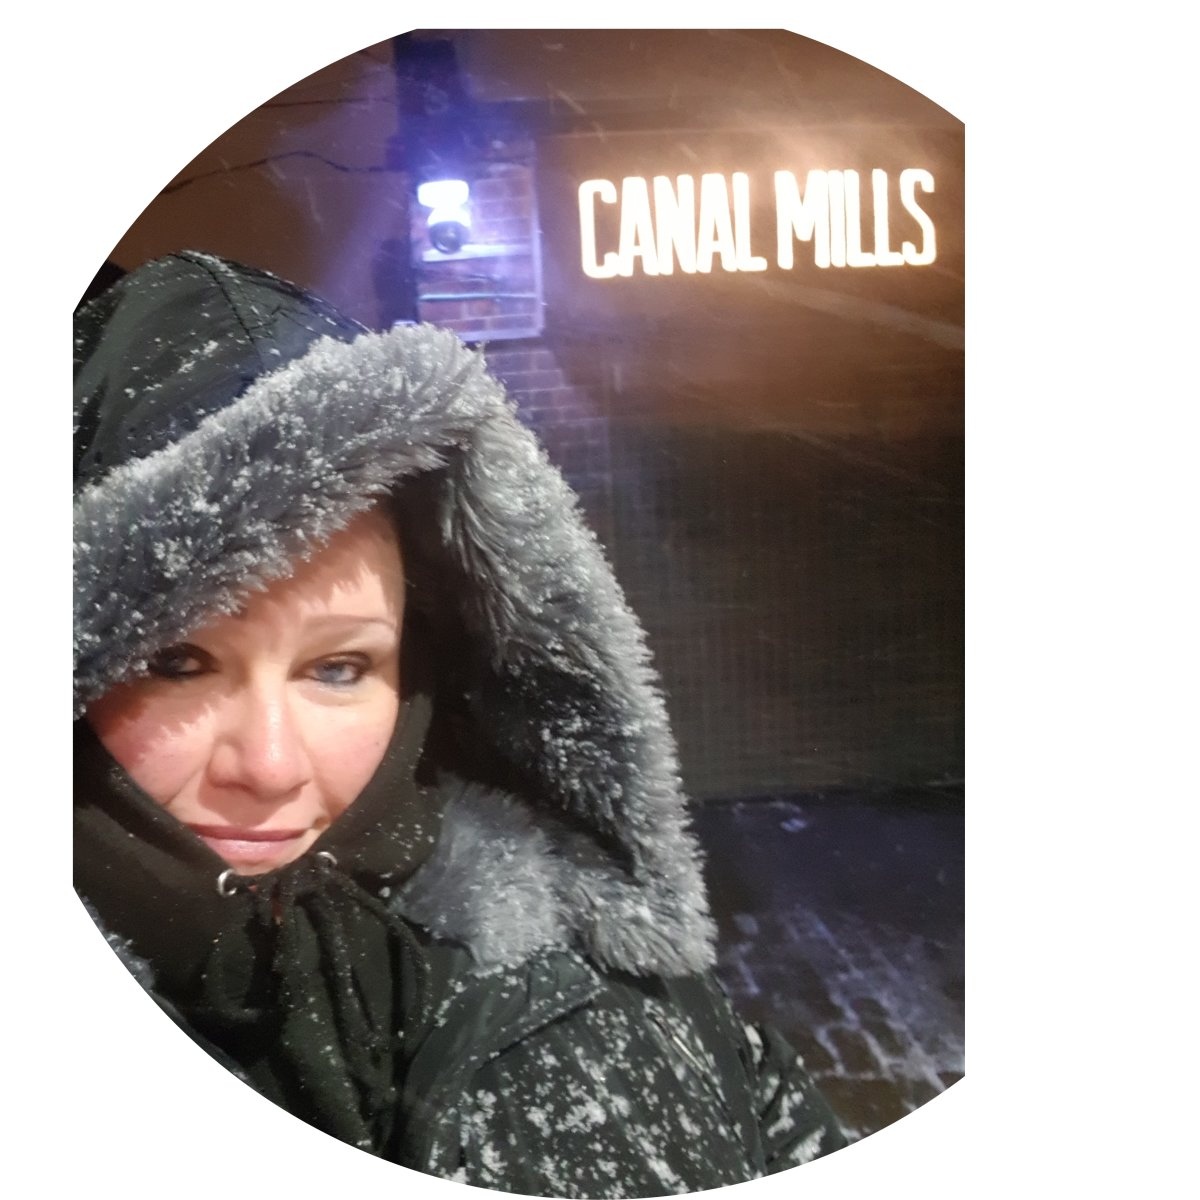 Canal Mills/Professional Security's profile pic